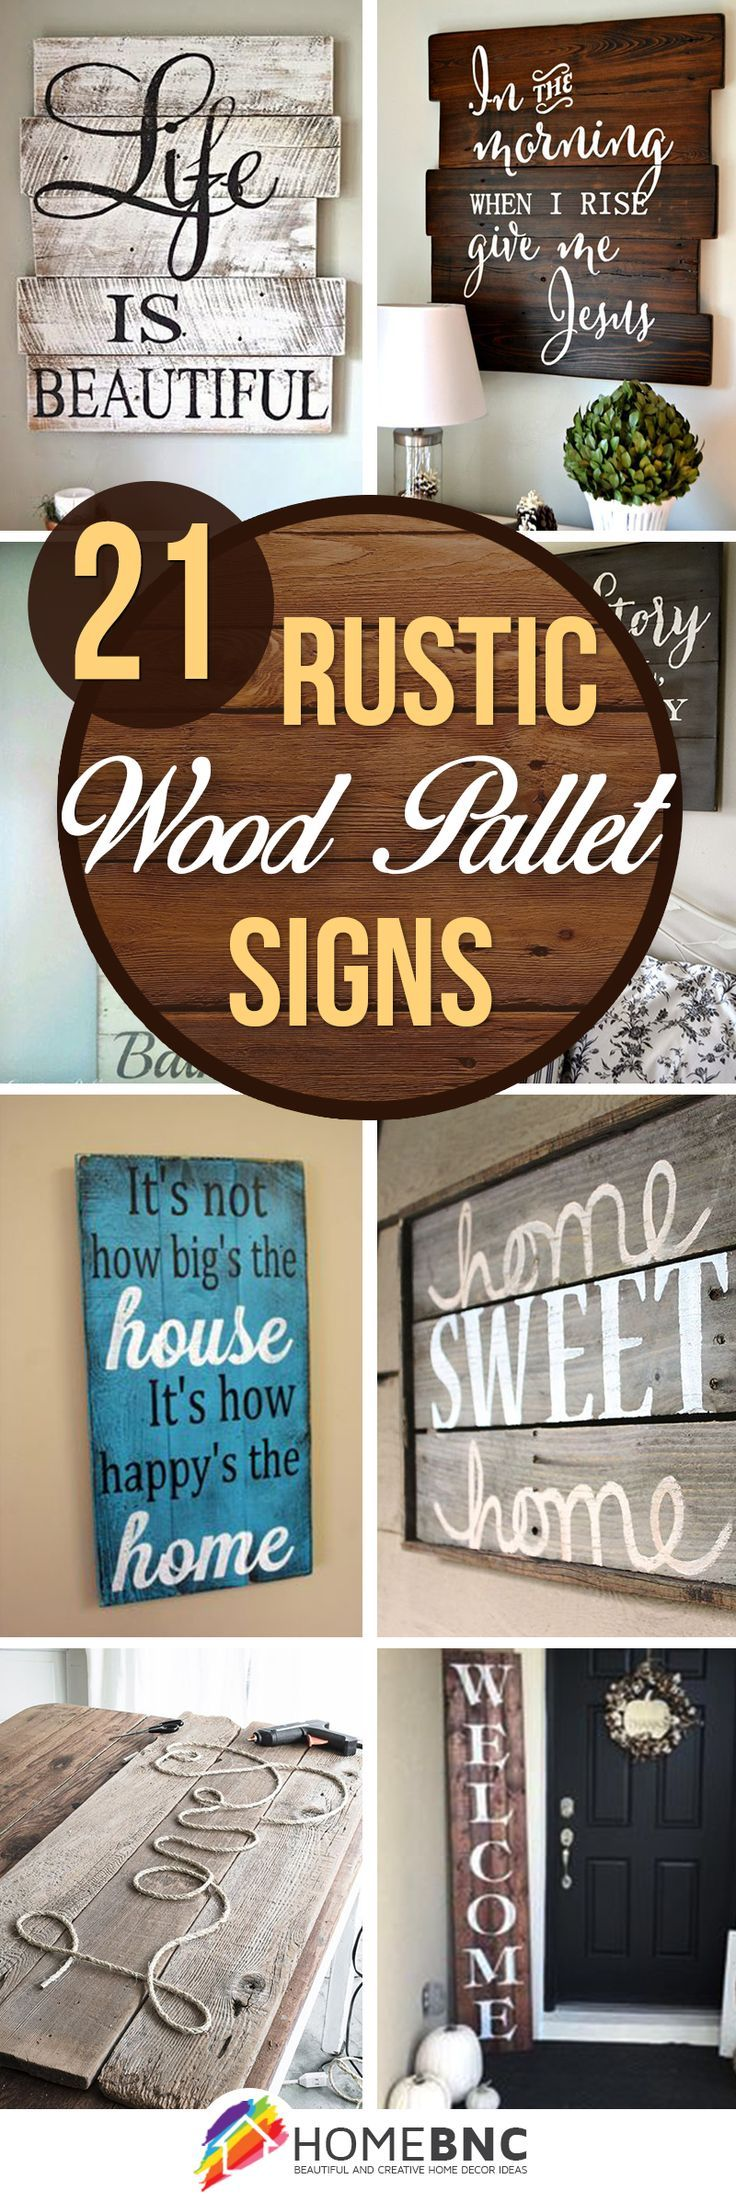 21 wood signs to add rustic glam to your decor